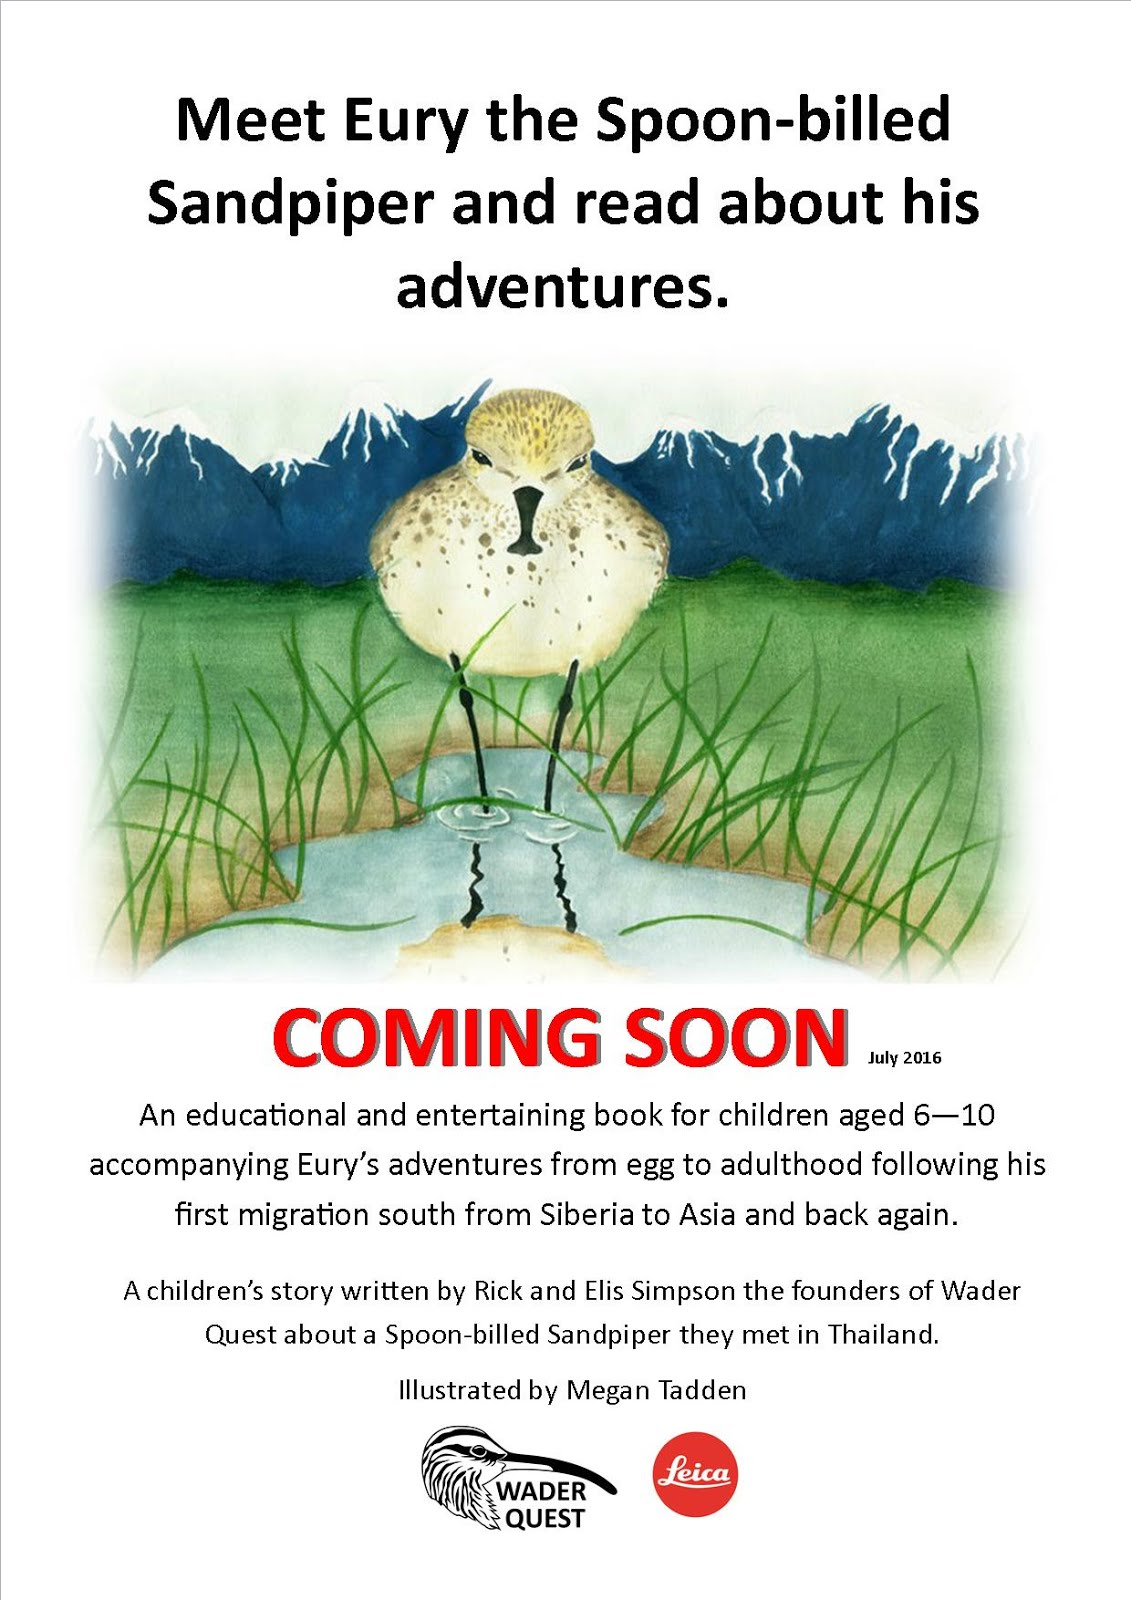 Wader Quest Publishing news: